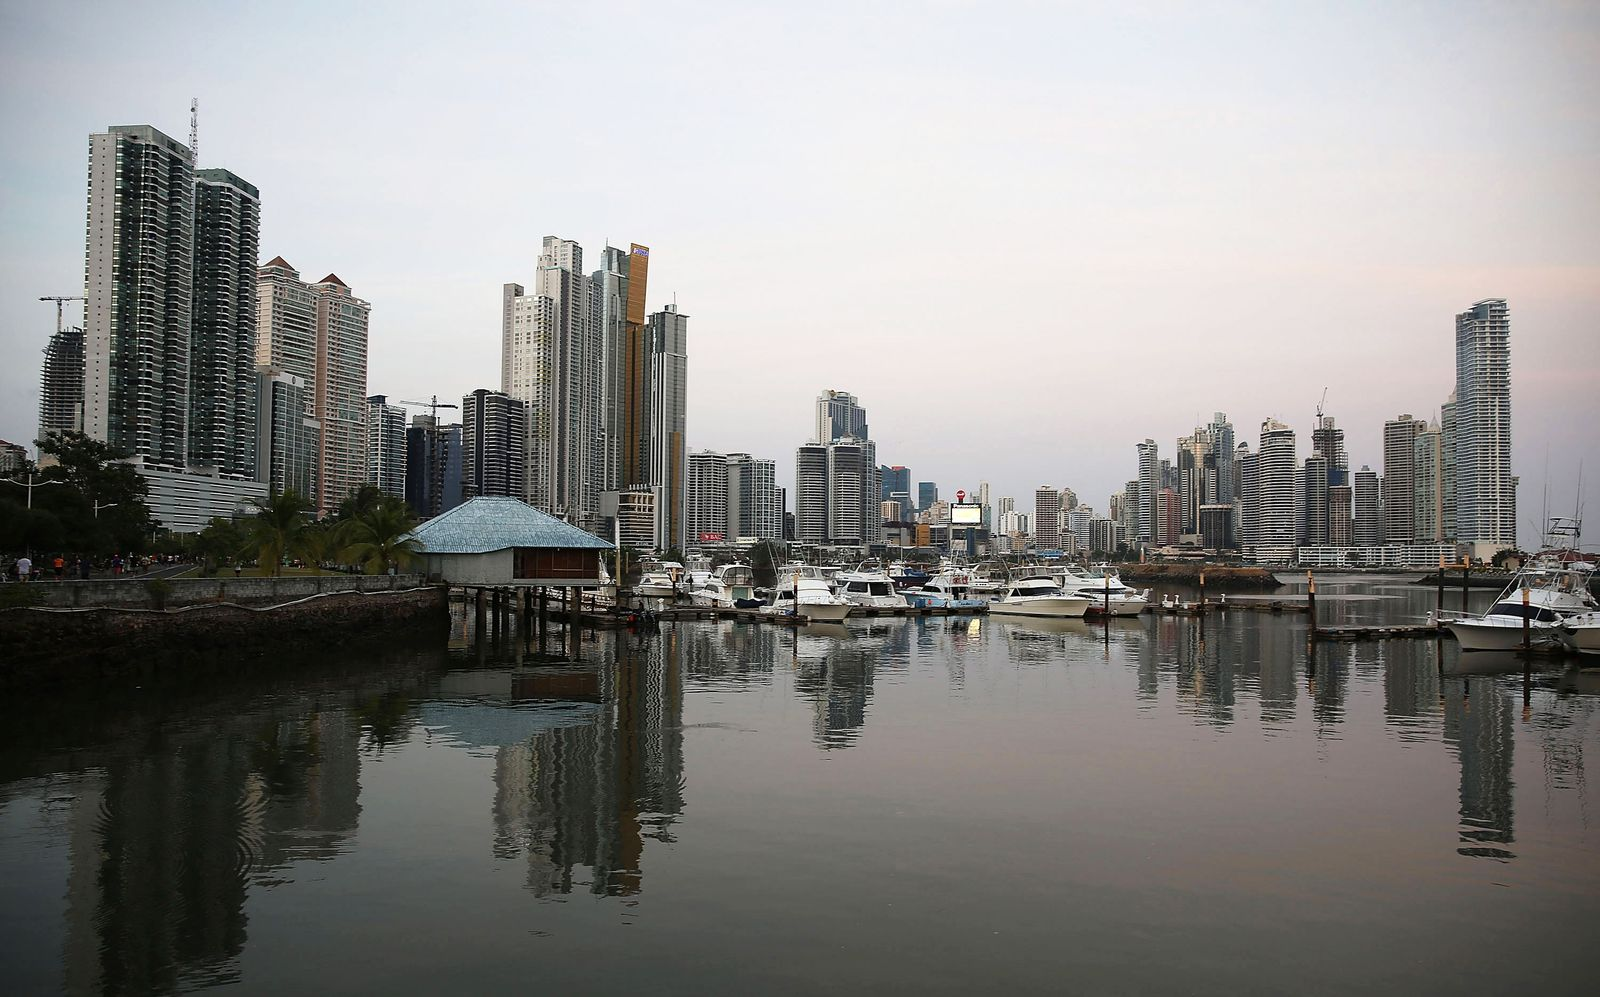 Panamanian Law Firm Mossack Fonseca At Center Of Massive Document Leak Involving World's Rich And Powerful